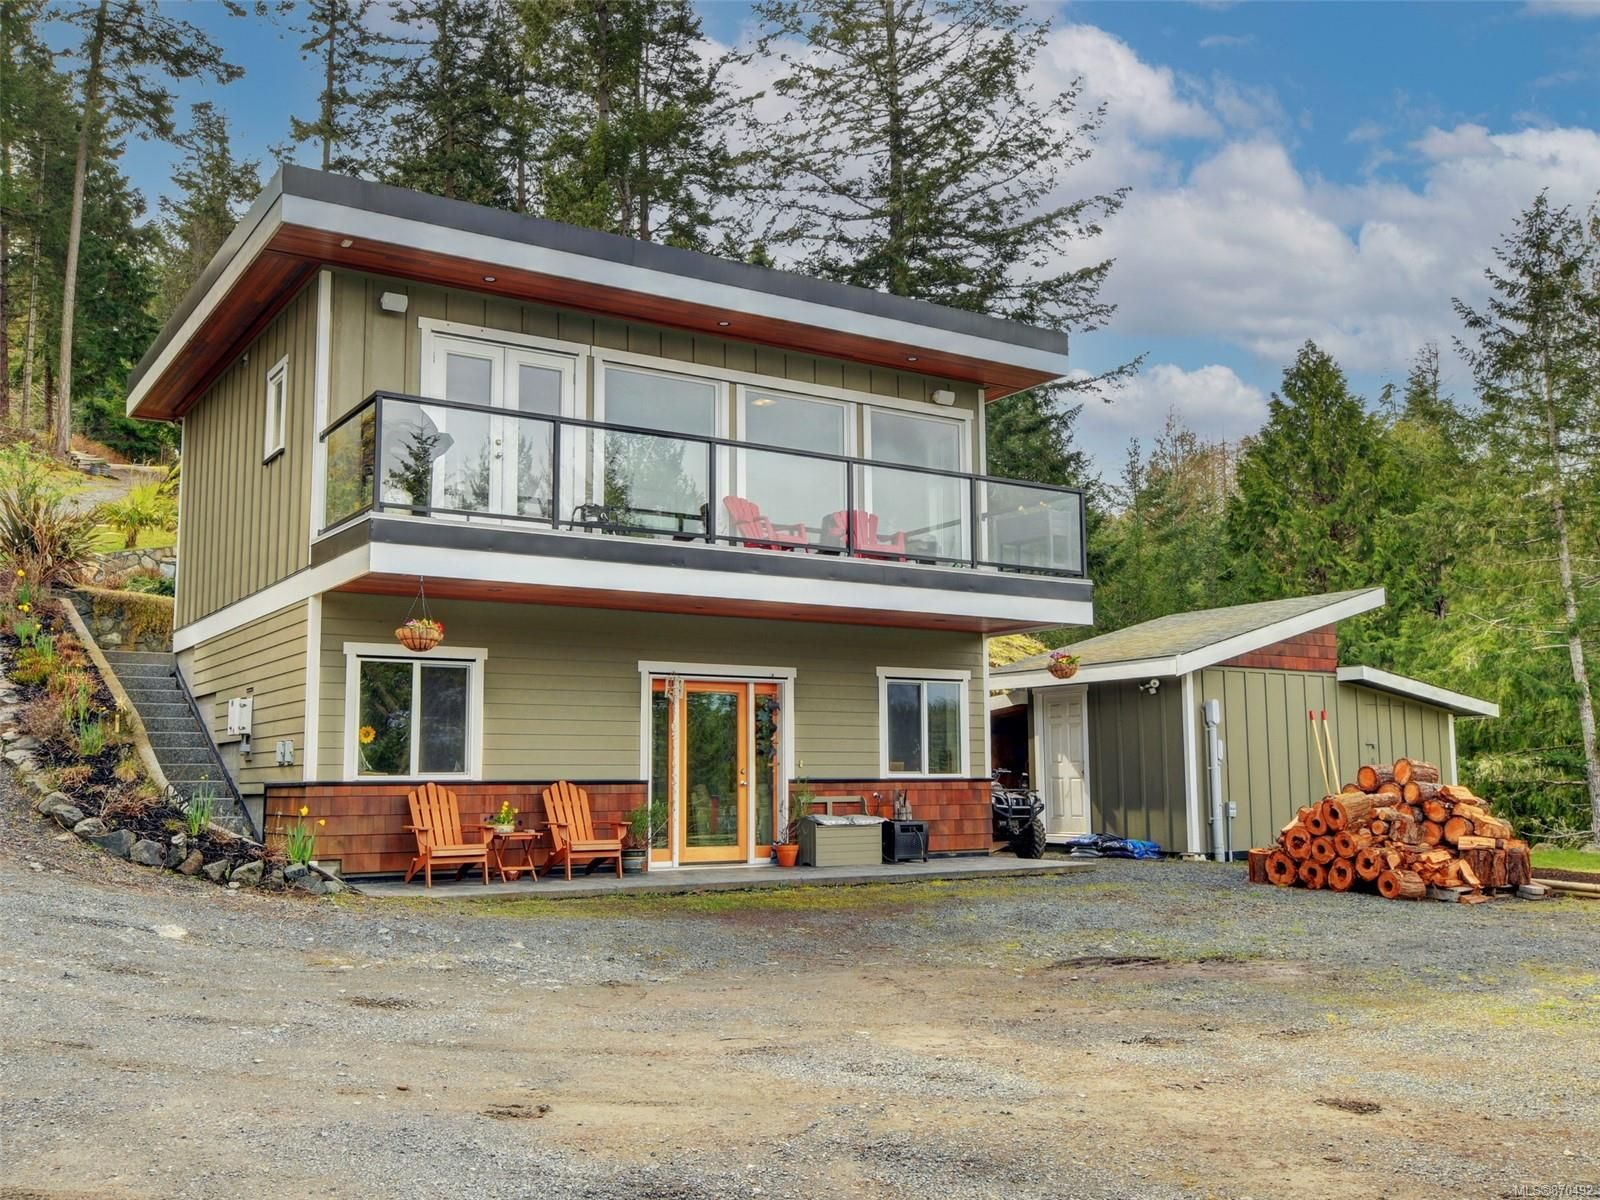 Main Photo: 6088 Timberdoodle Rd in : Sk East Sooke House for sale (Sooke)  : MLS®# 870492